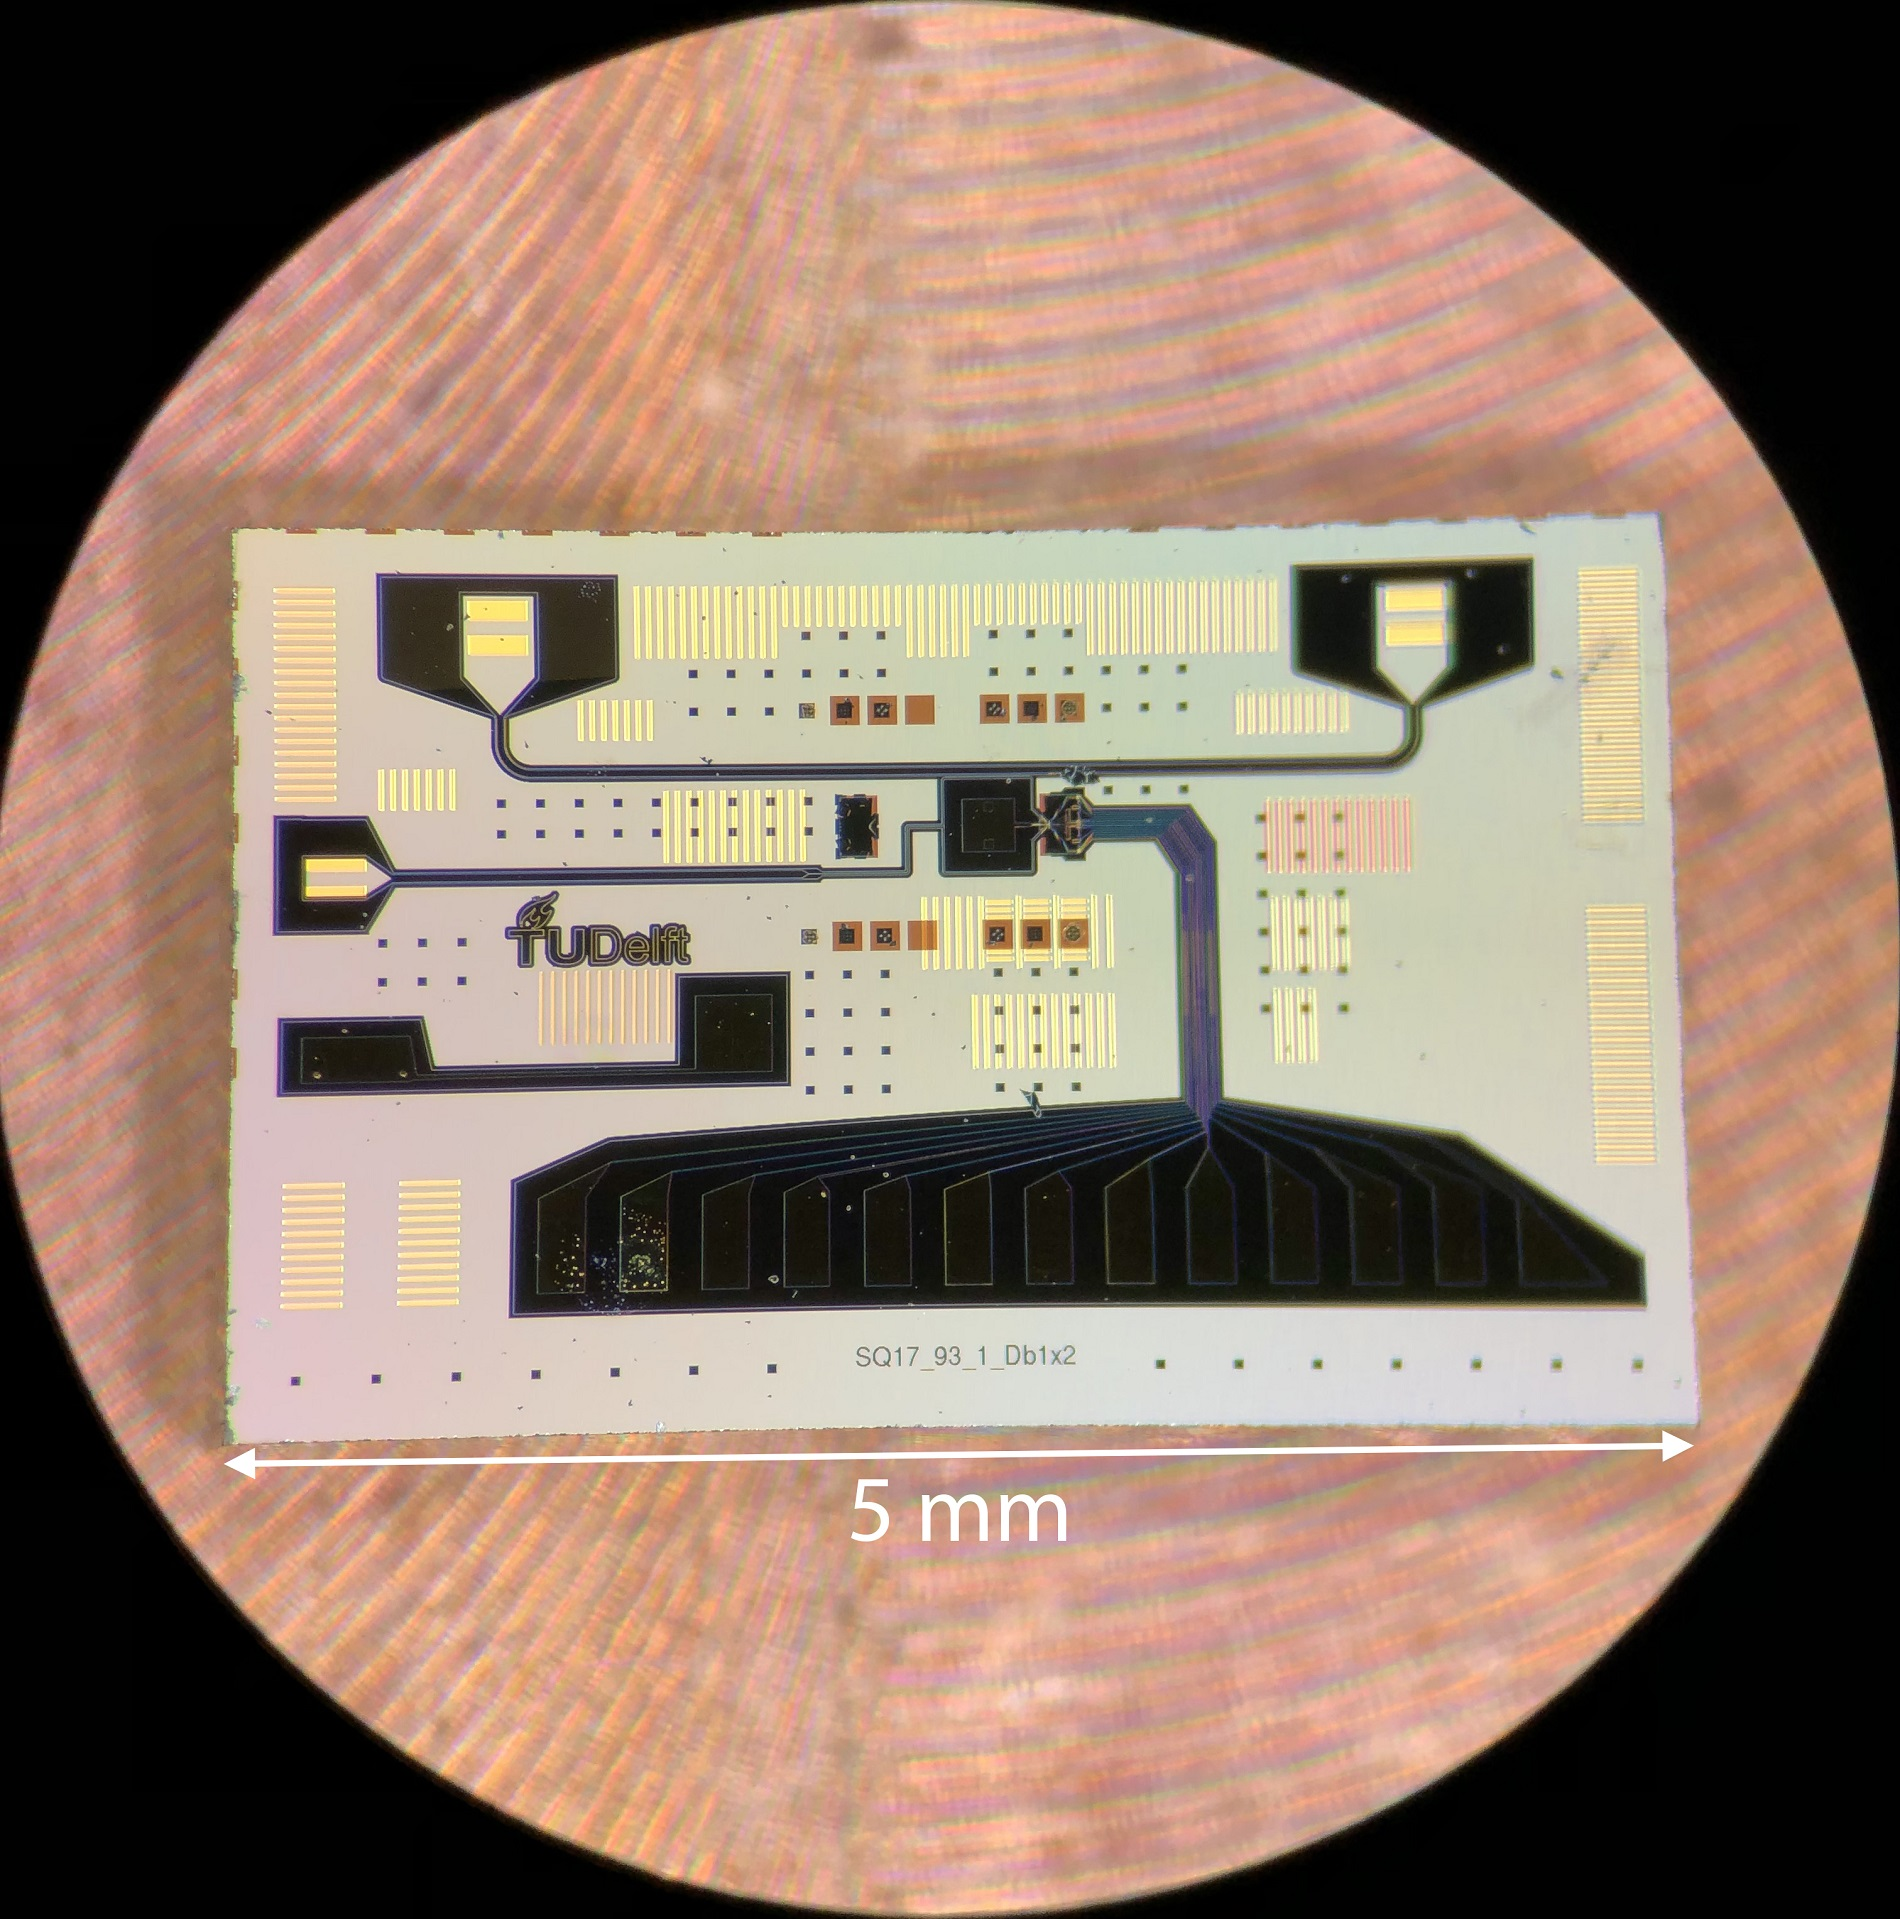 Optical microscope image of the quantum chip with the on-chip resonator and quantum dots